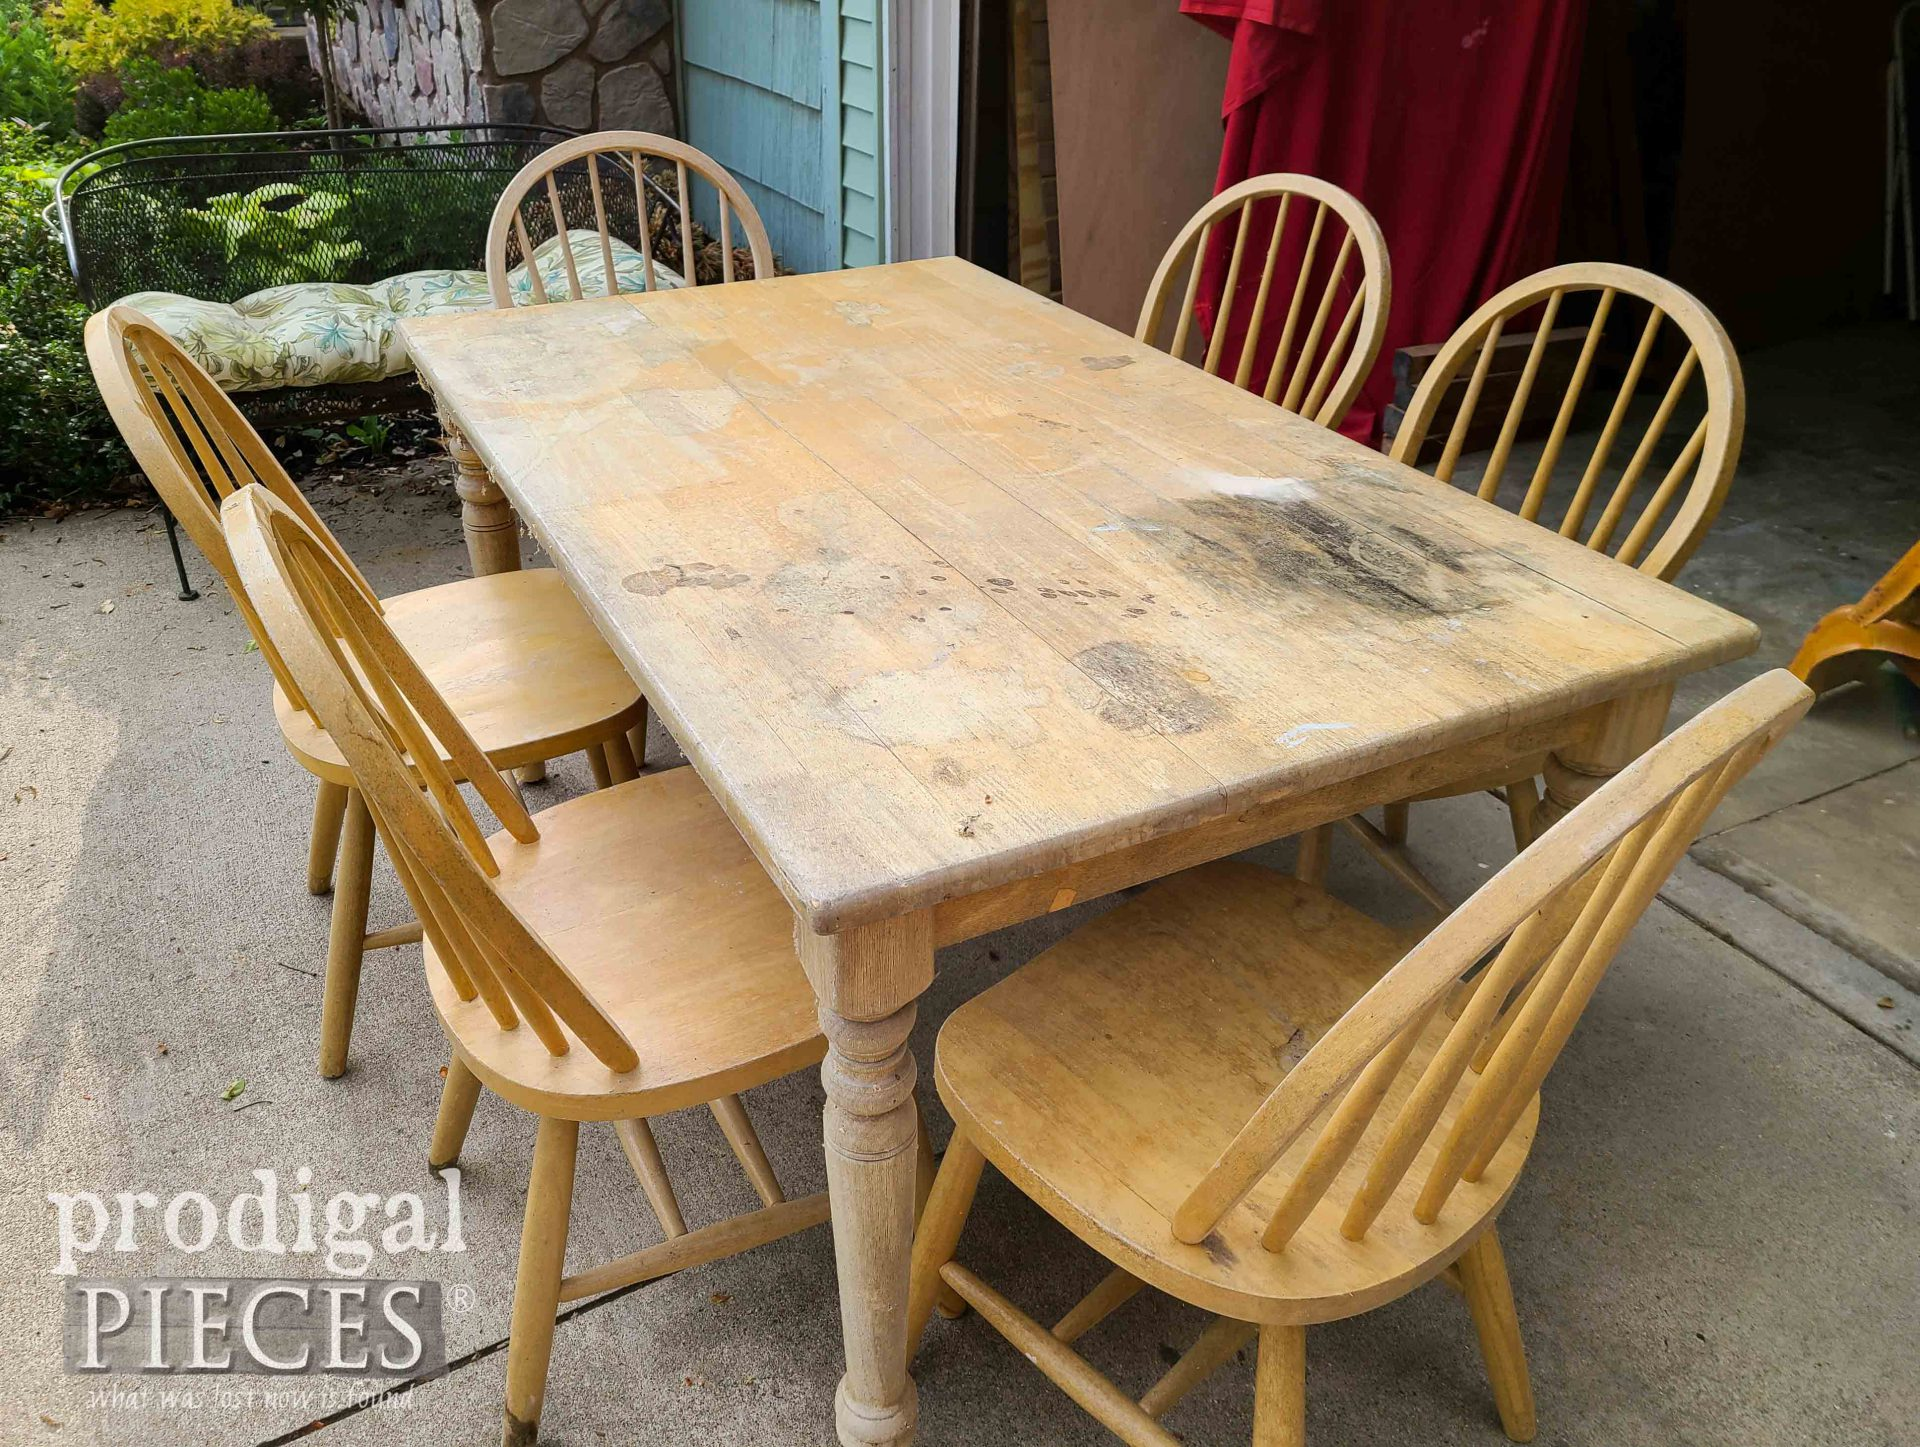 Weathered Farmhouse Dining Table with Stains | prodigalpieces.com